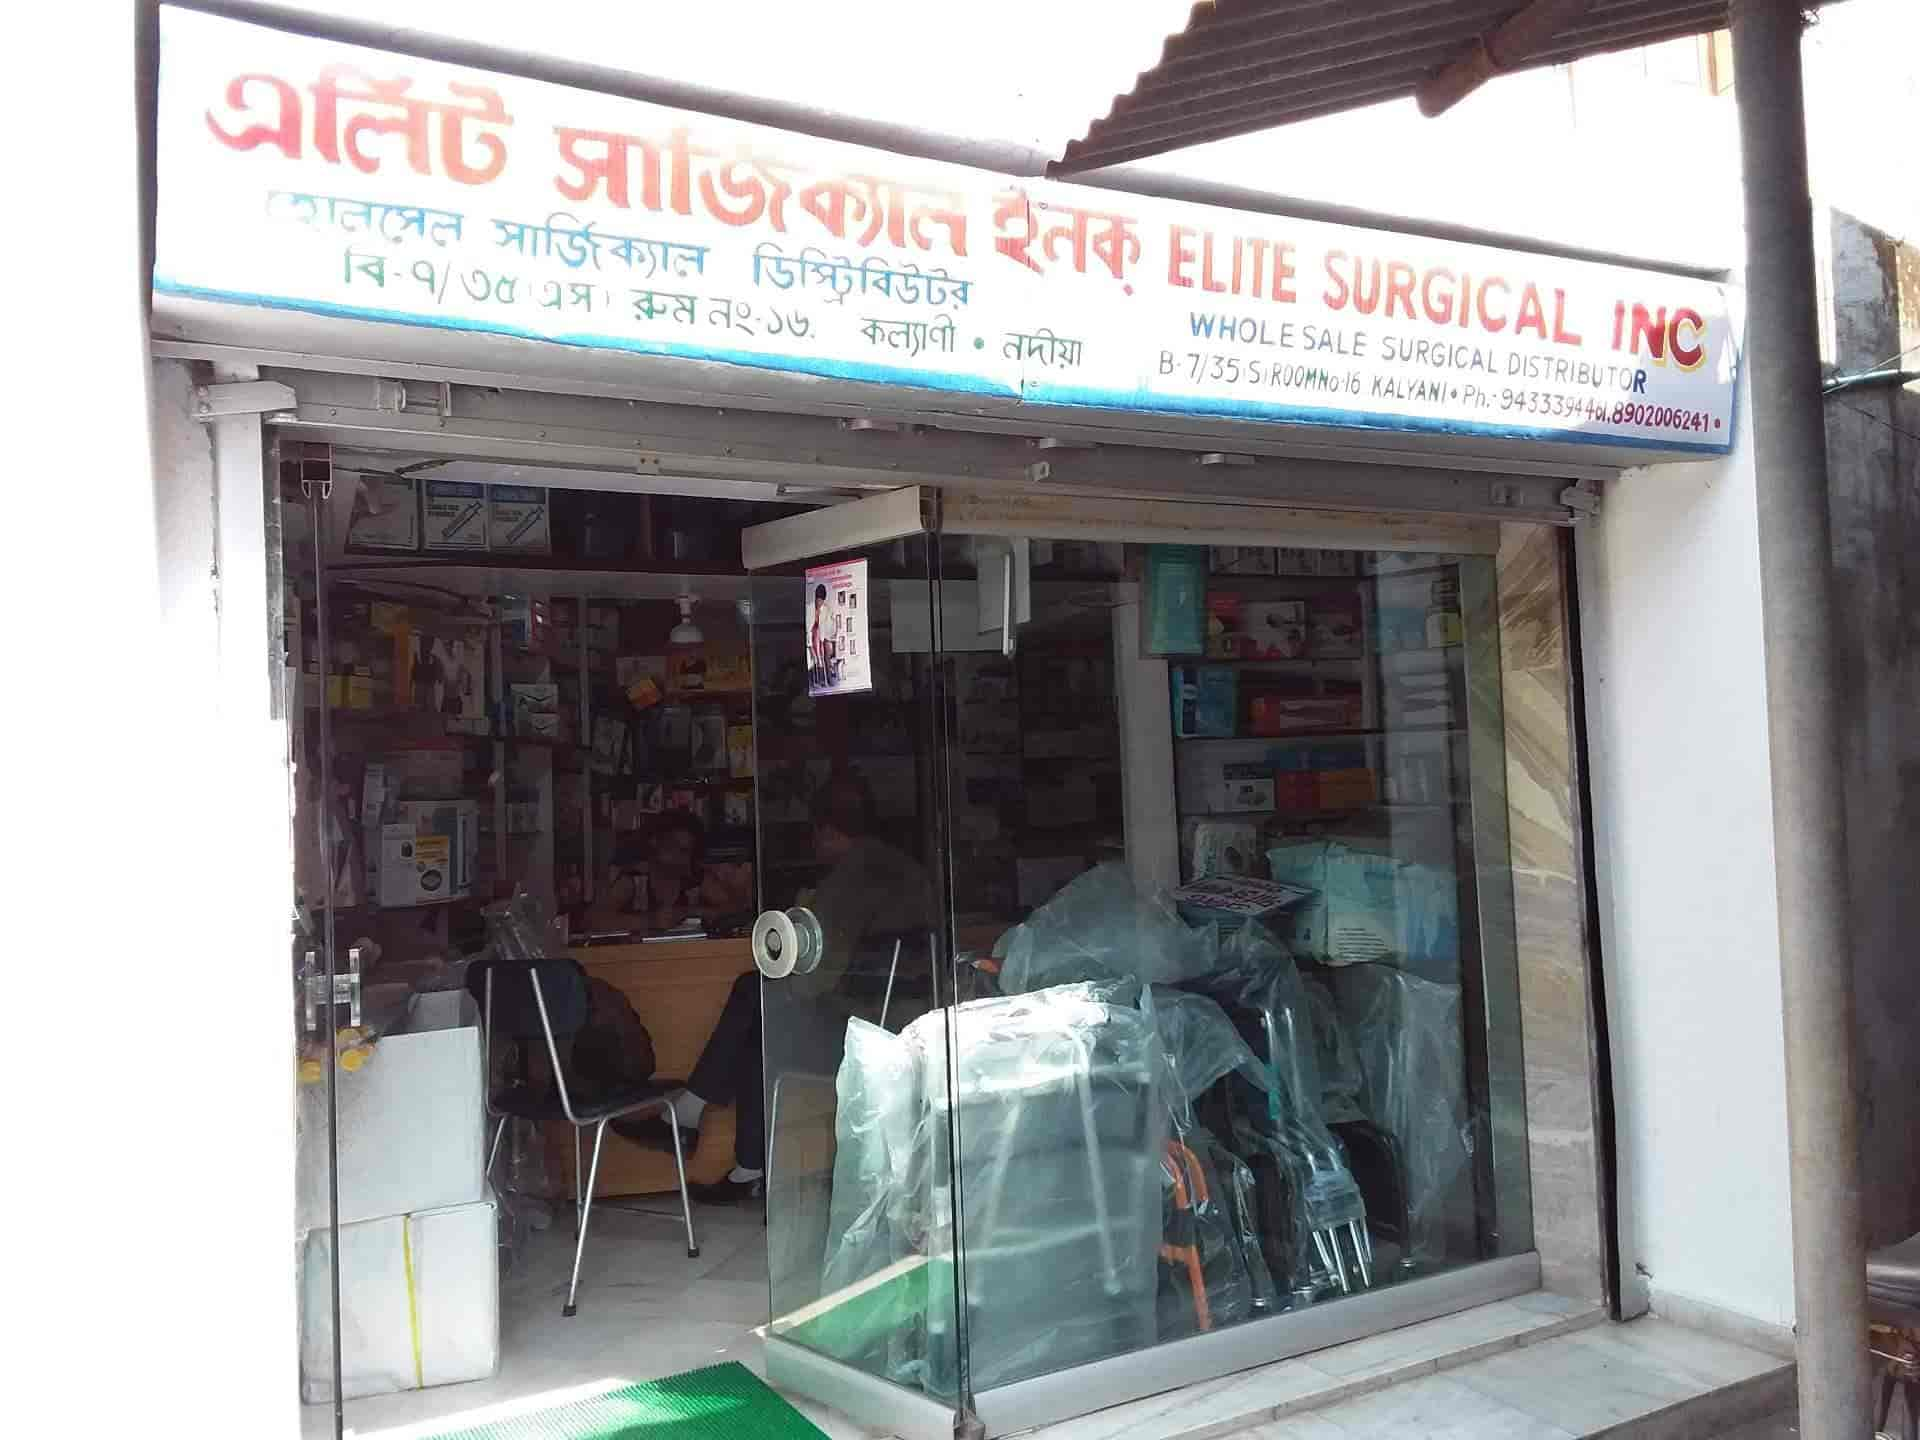 Elite Surgical Inc, Kalyani Ho - Surgical Accessory Dealers